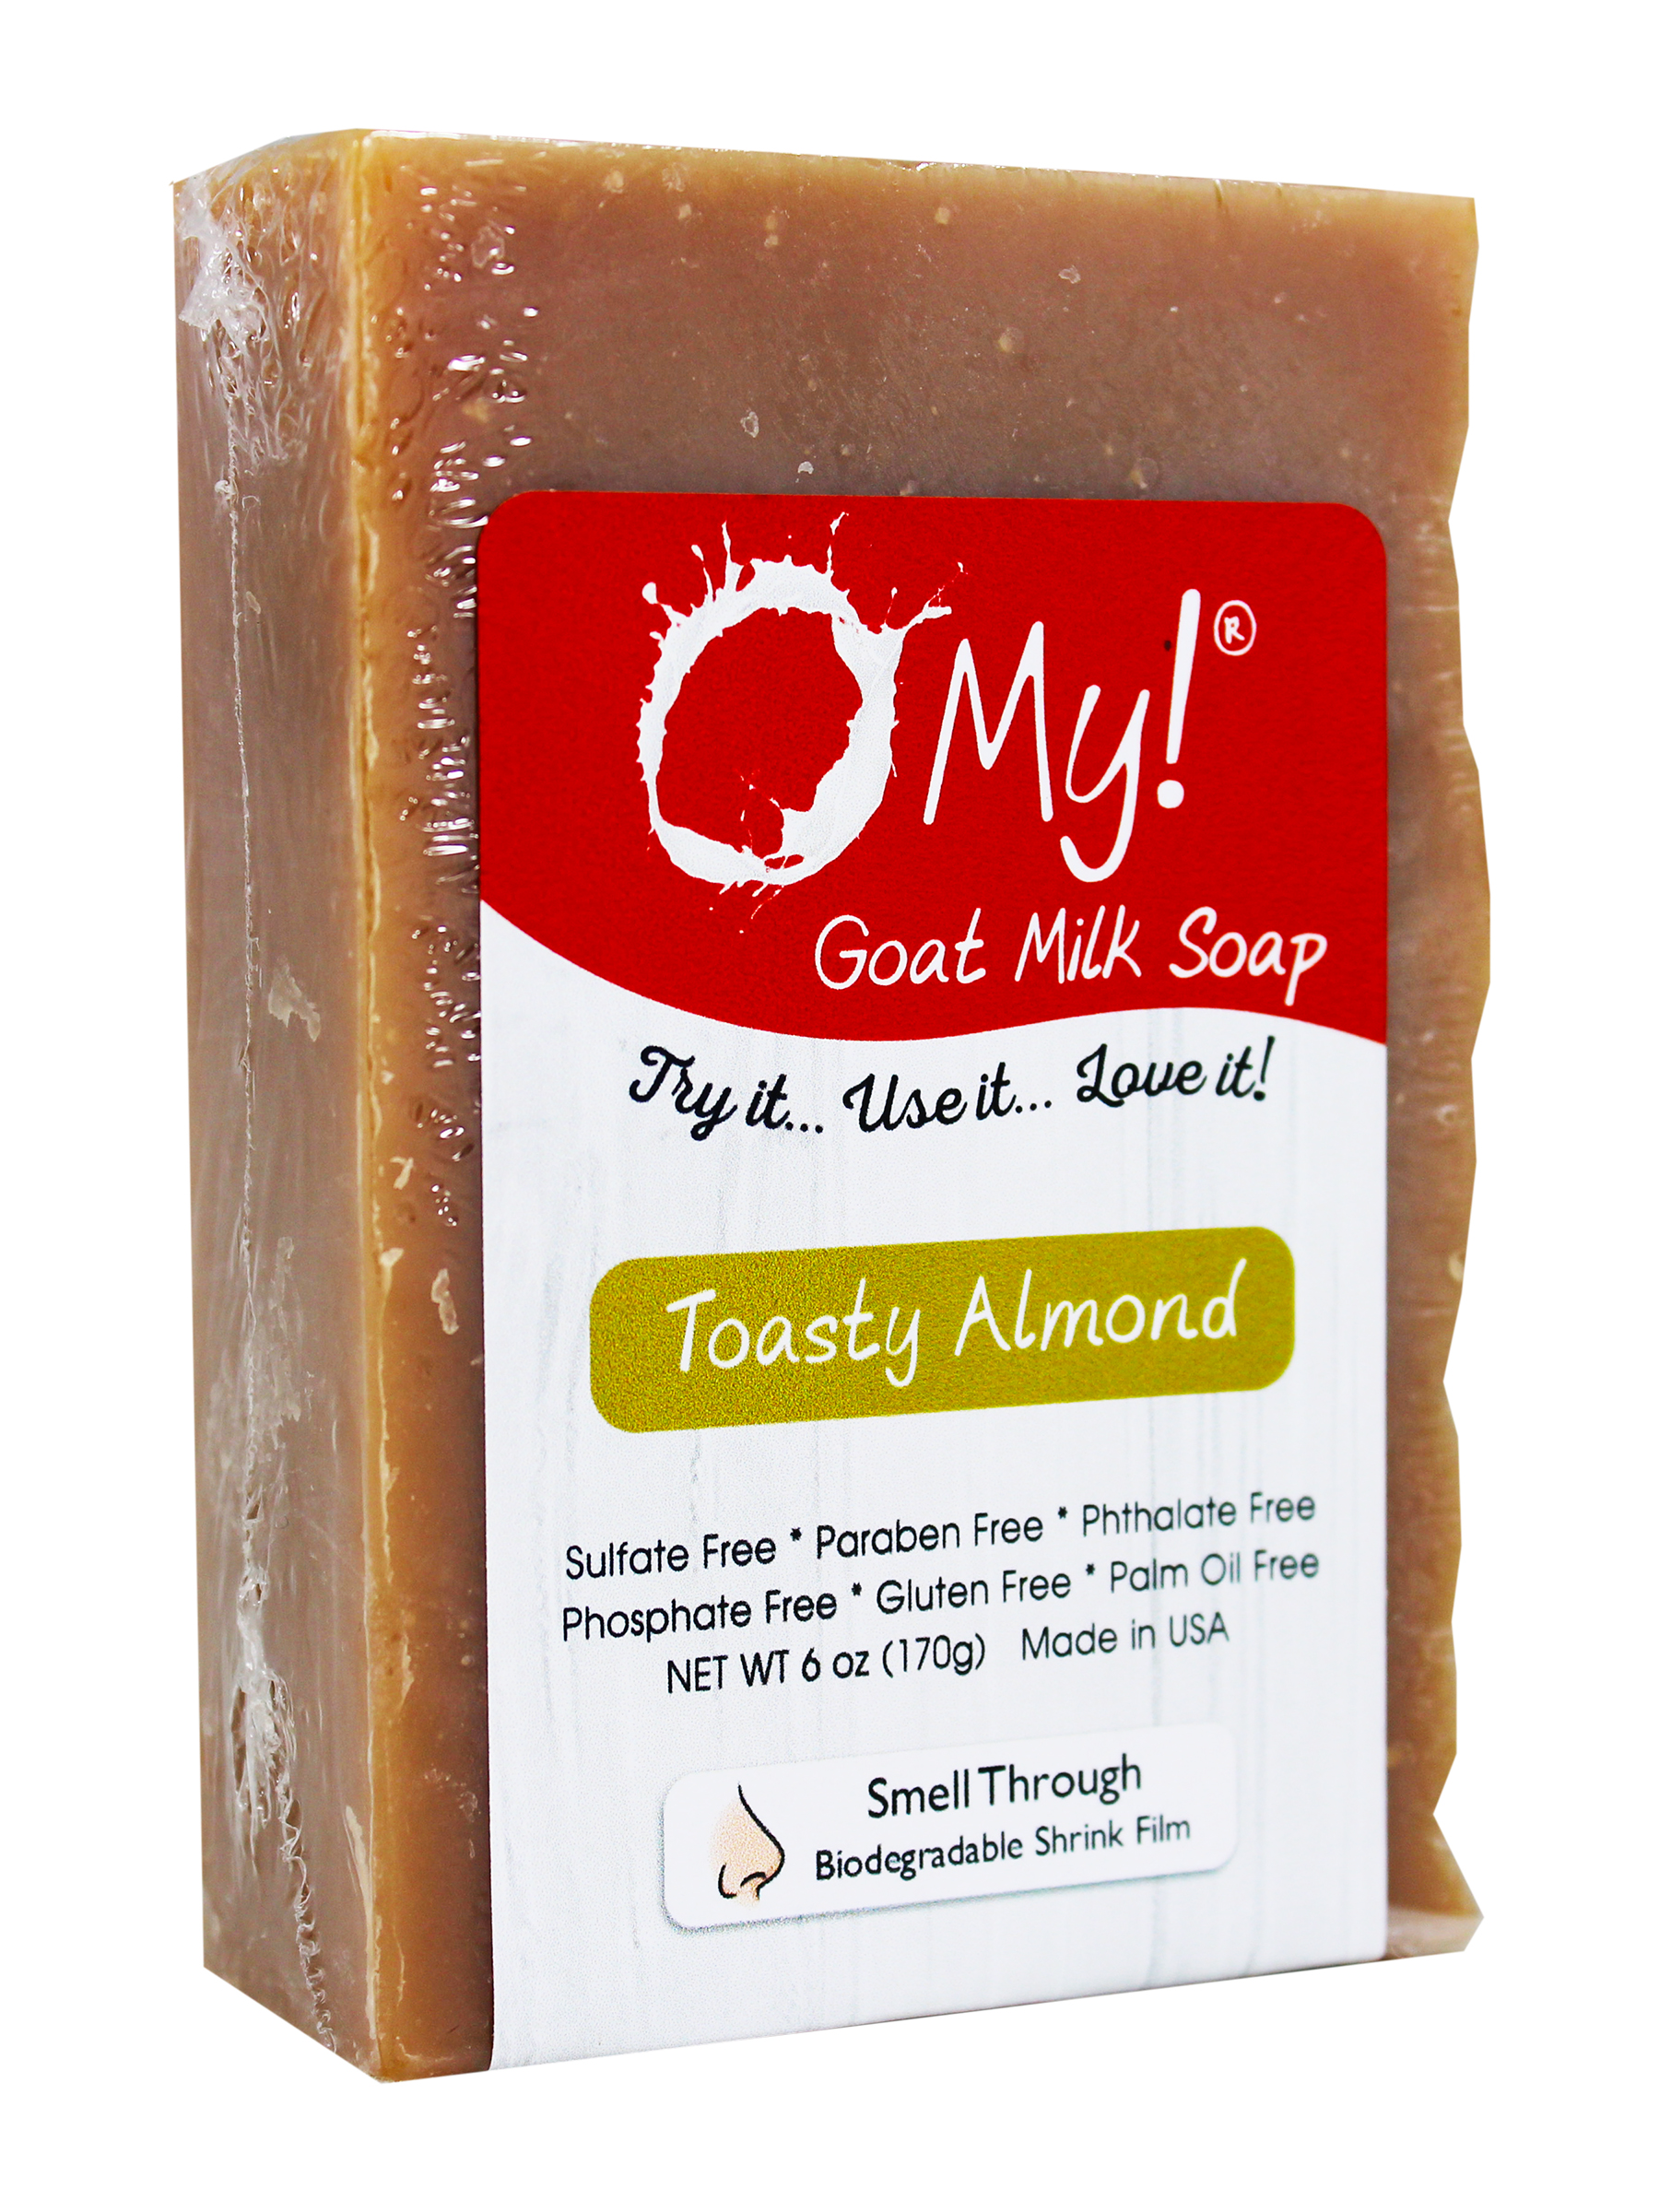 O My! Goat Milk Soap 6oz Bar - Toasty Almond | Made with Farm-Fresh Goat Milk | Moisturizes dry skin | Gently Exfoliates | Paraben Free | Leaping Bunny Certified | Made in USA